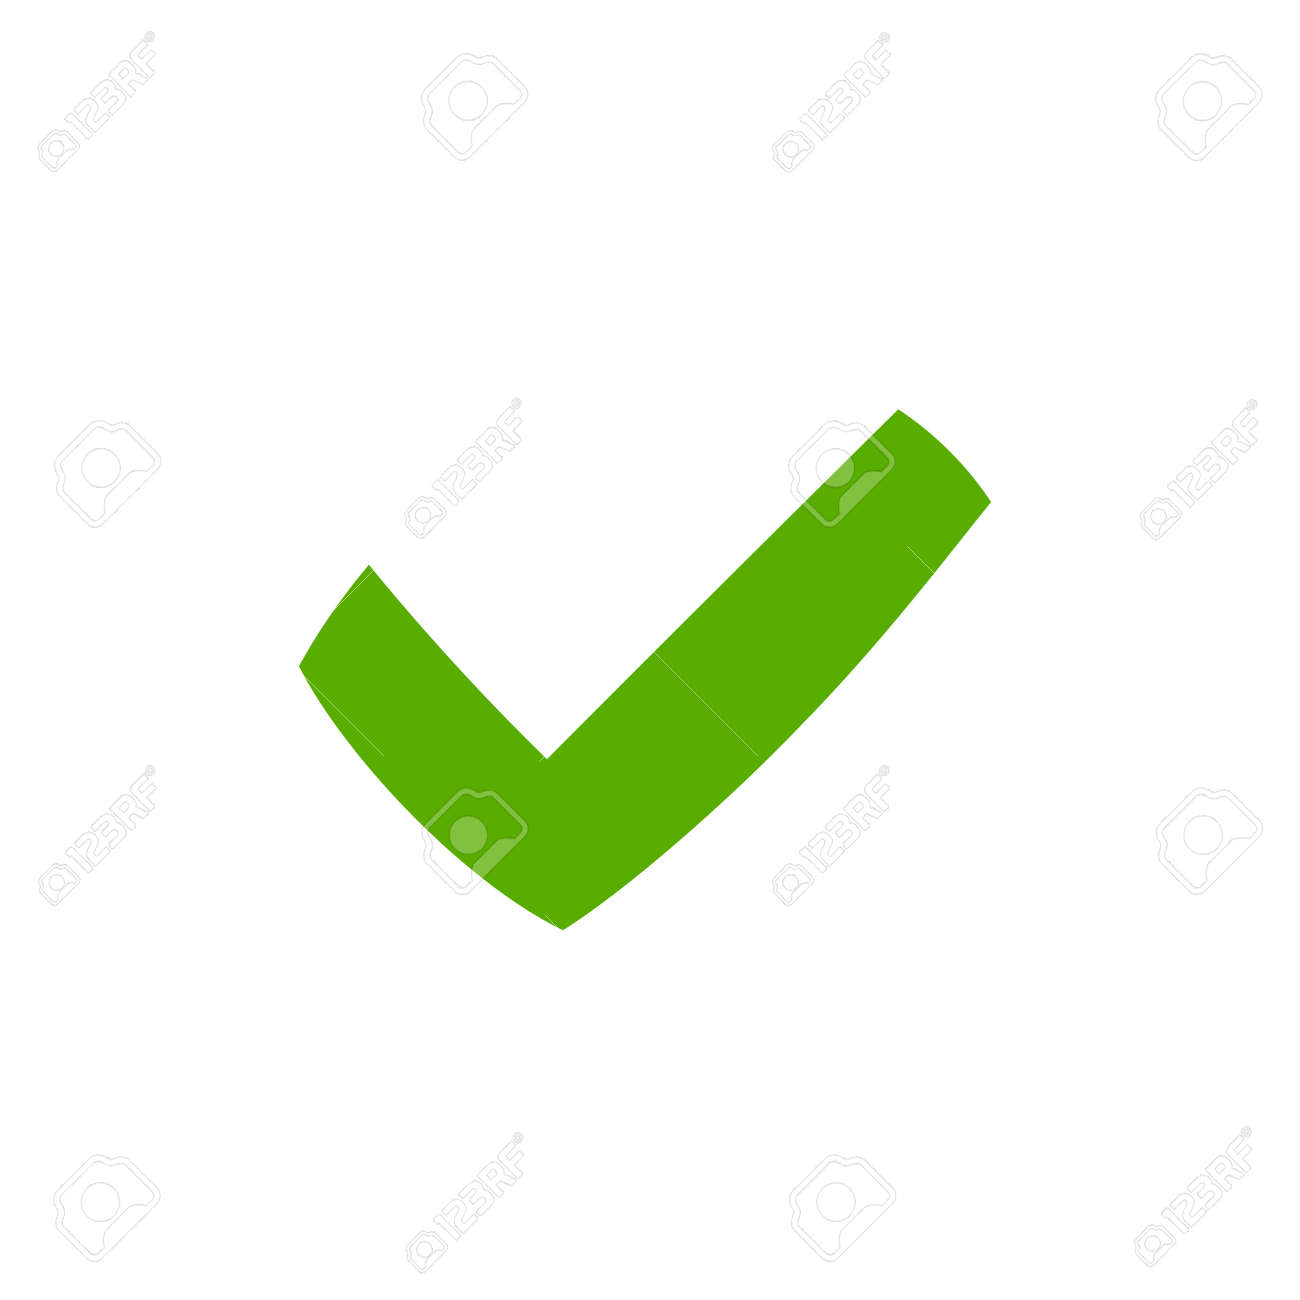 tick sign element green checkmark icon isolated on white background rh 123rf com check mark graphics downloadable check mark graphic powerpoint